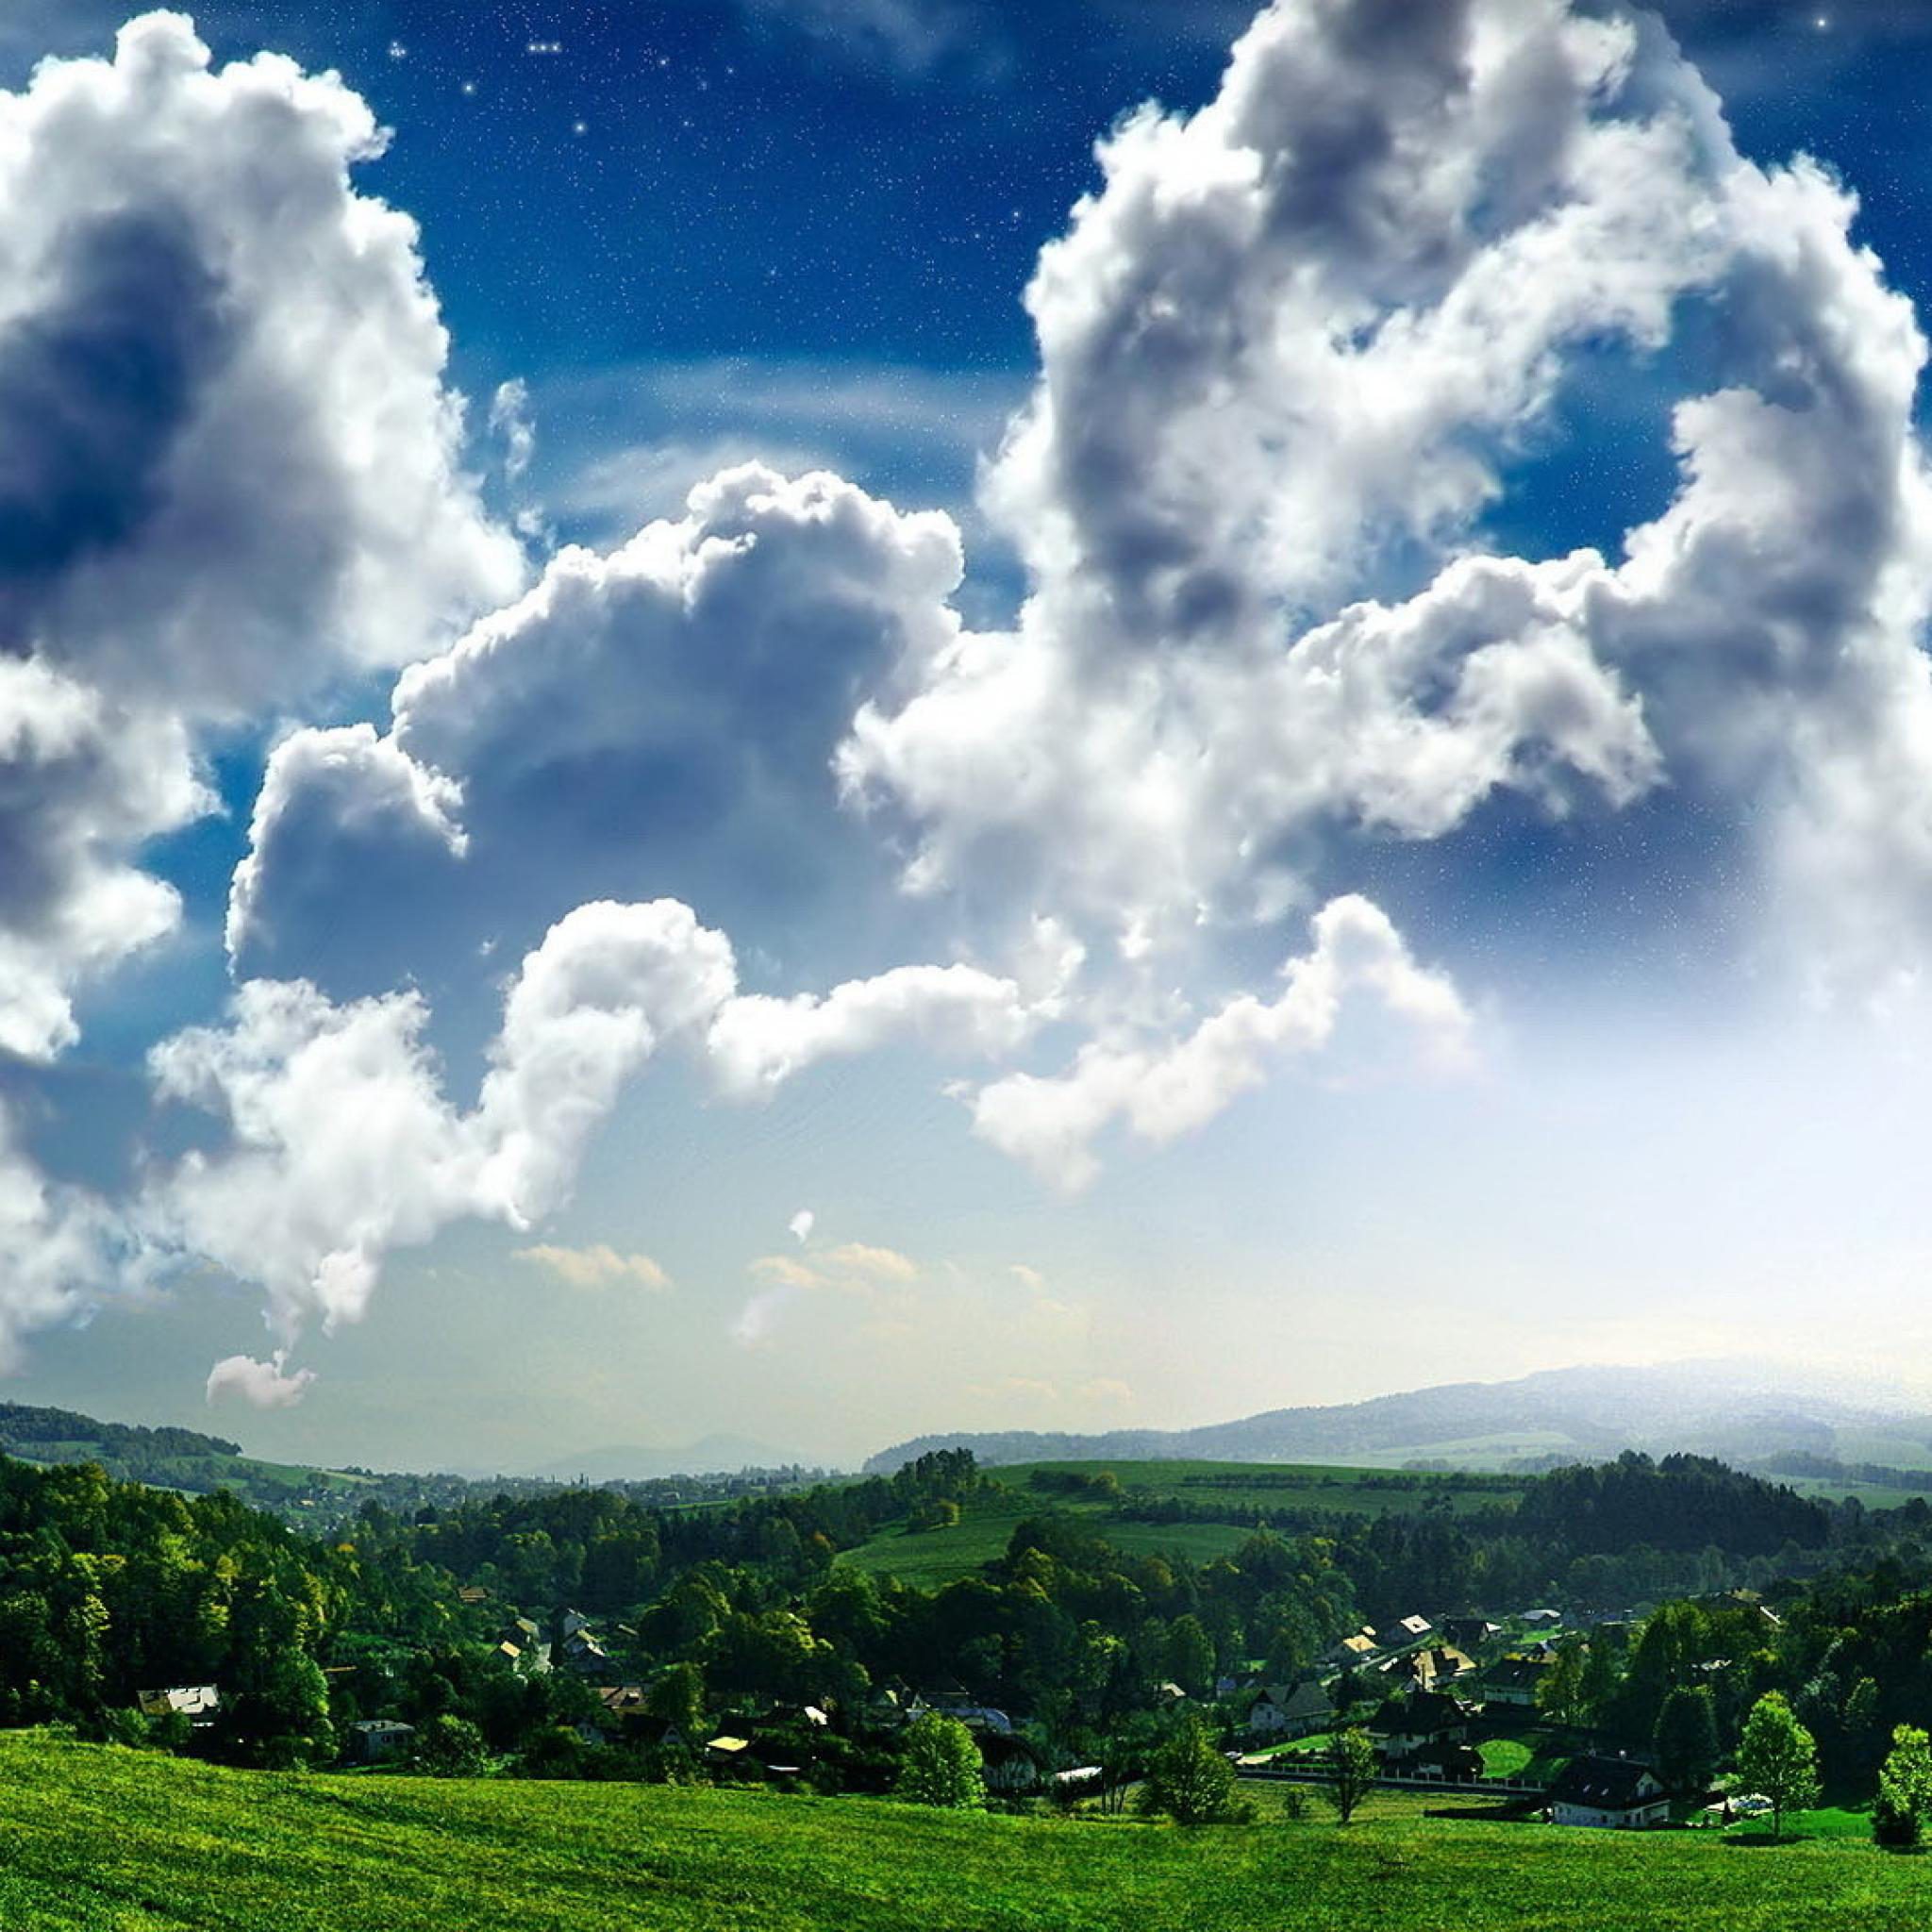 Cloud-Hill-Forest-Sky-Nature-3Wallpapers-iPad-Retina